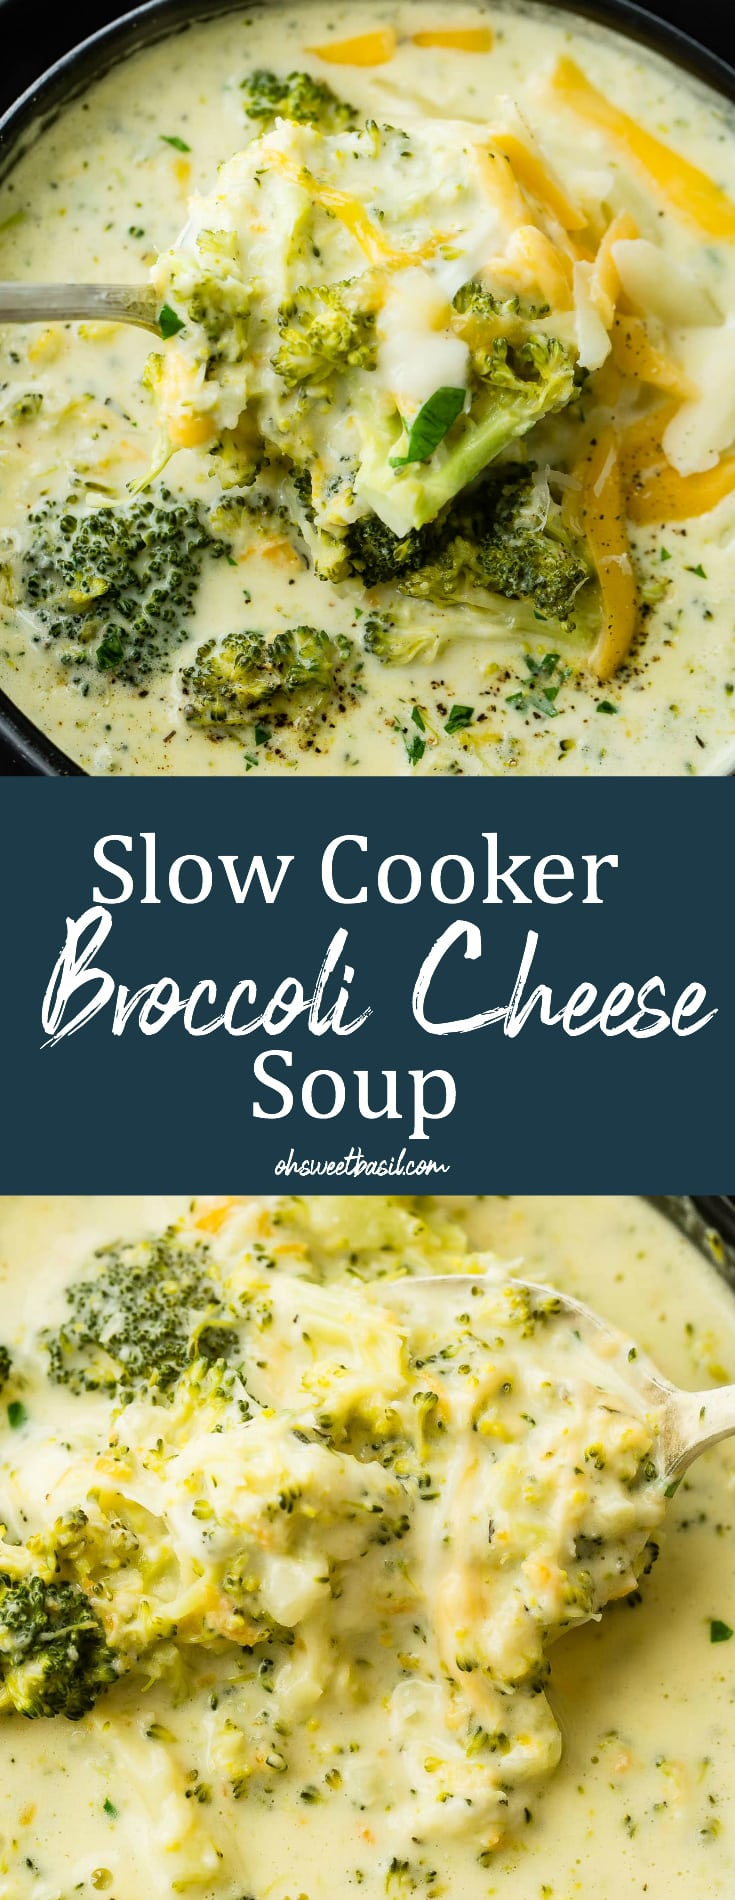 a black bowl full of slow cooker broccoli cheese soup with extra cheese on top!